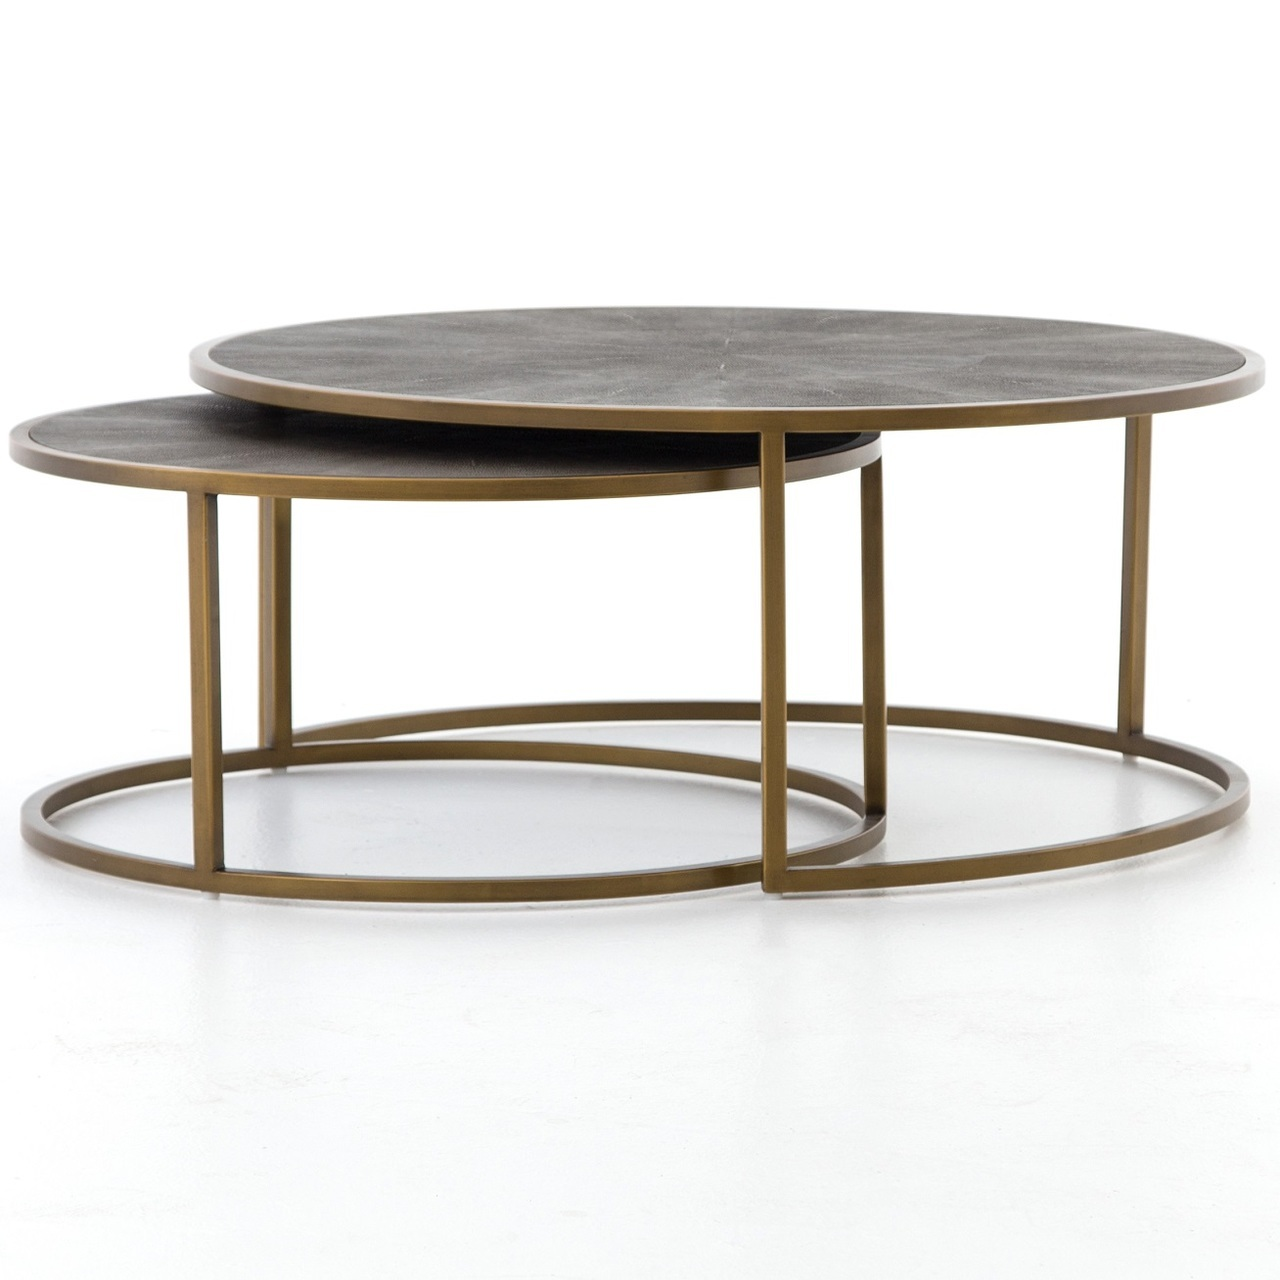 hollywood modern shagreen nesting coffee tables brass zin home vben prm end table iron round how big are riverside furniture medley ethan allen hutch value wicker chair side